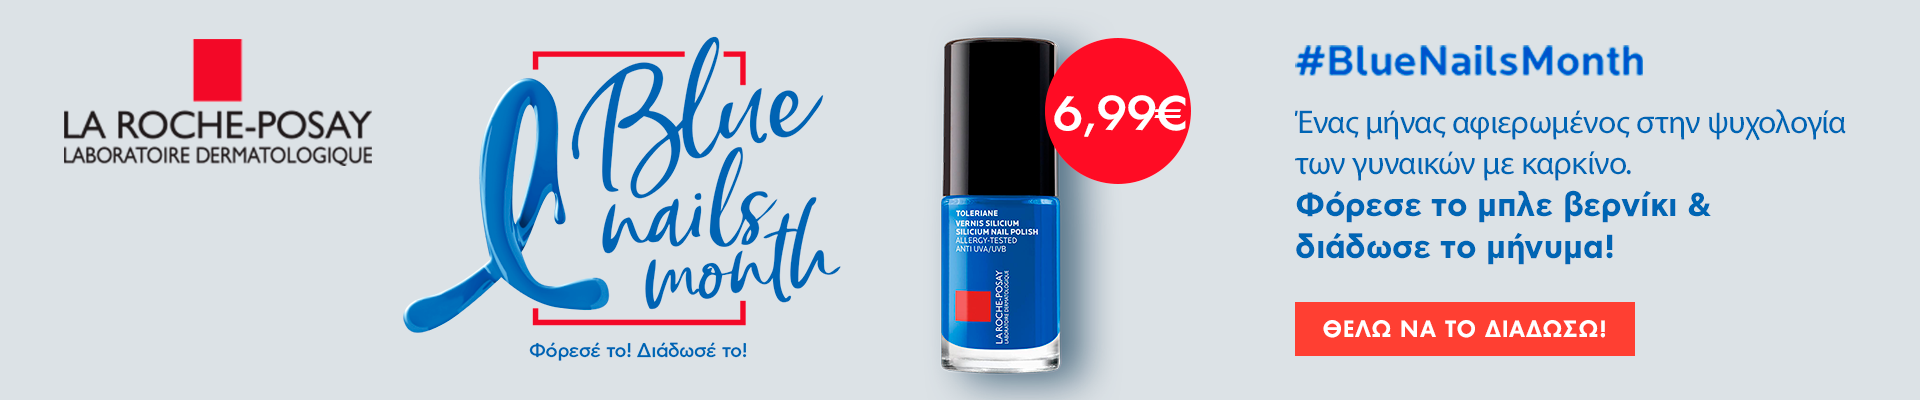 La Roche Posay Blue Nails 3/10